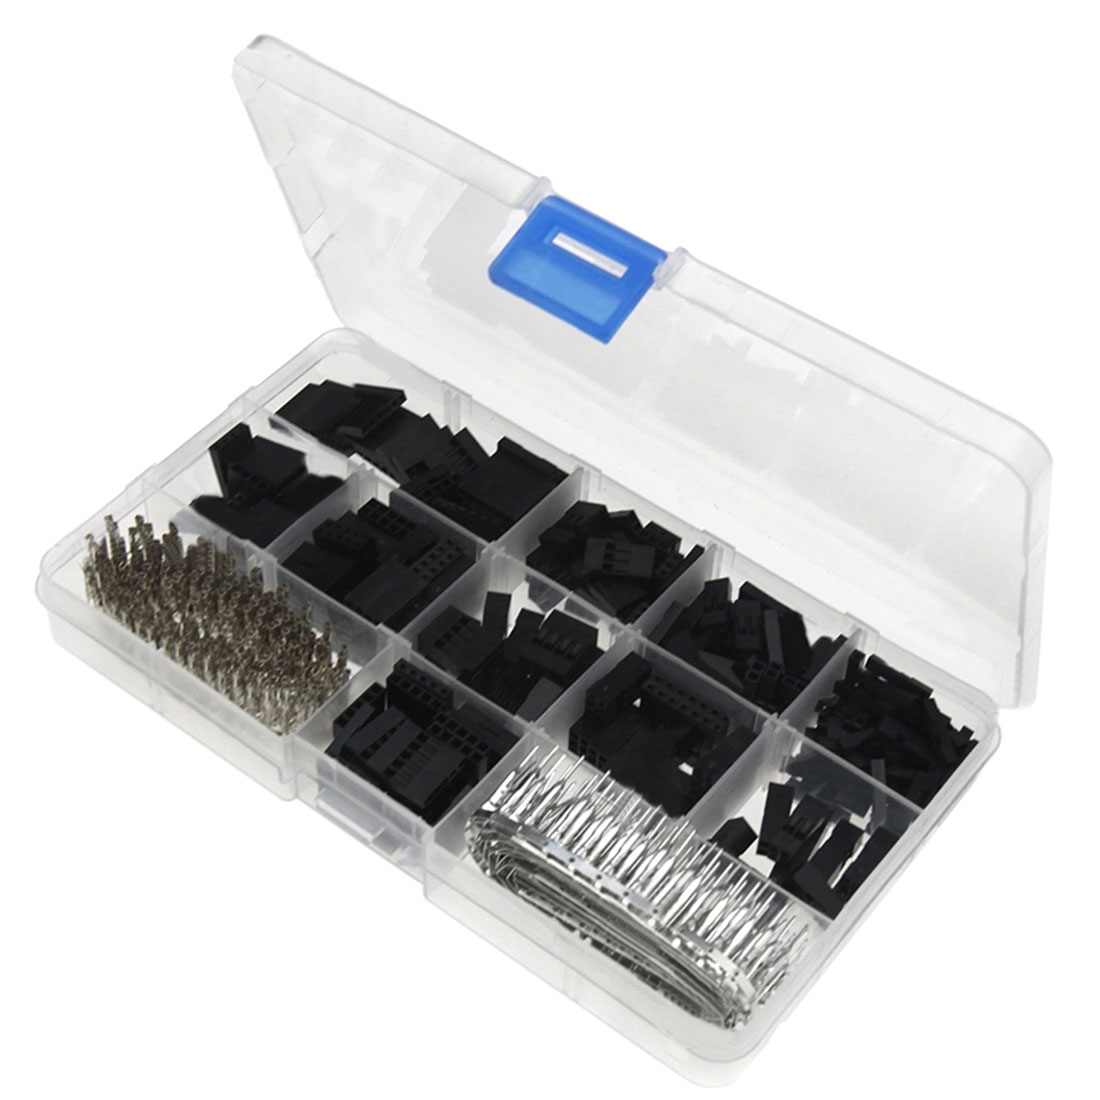 Good 620pcs Wire Cable Jumper Pin Header Connector Housing Kit Male Crimp Pins+Female Pin Connector Terminal Pitch With Box